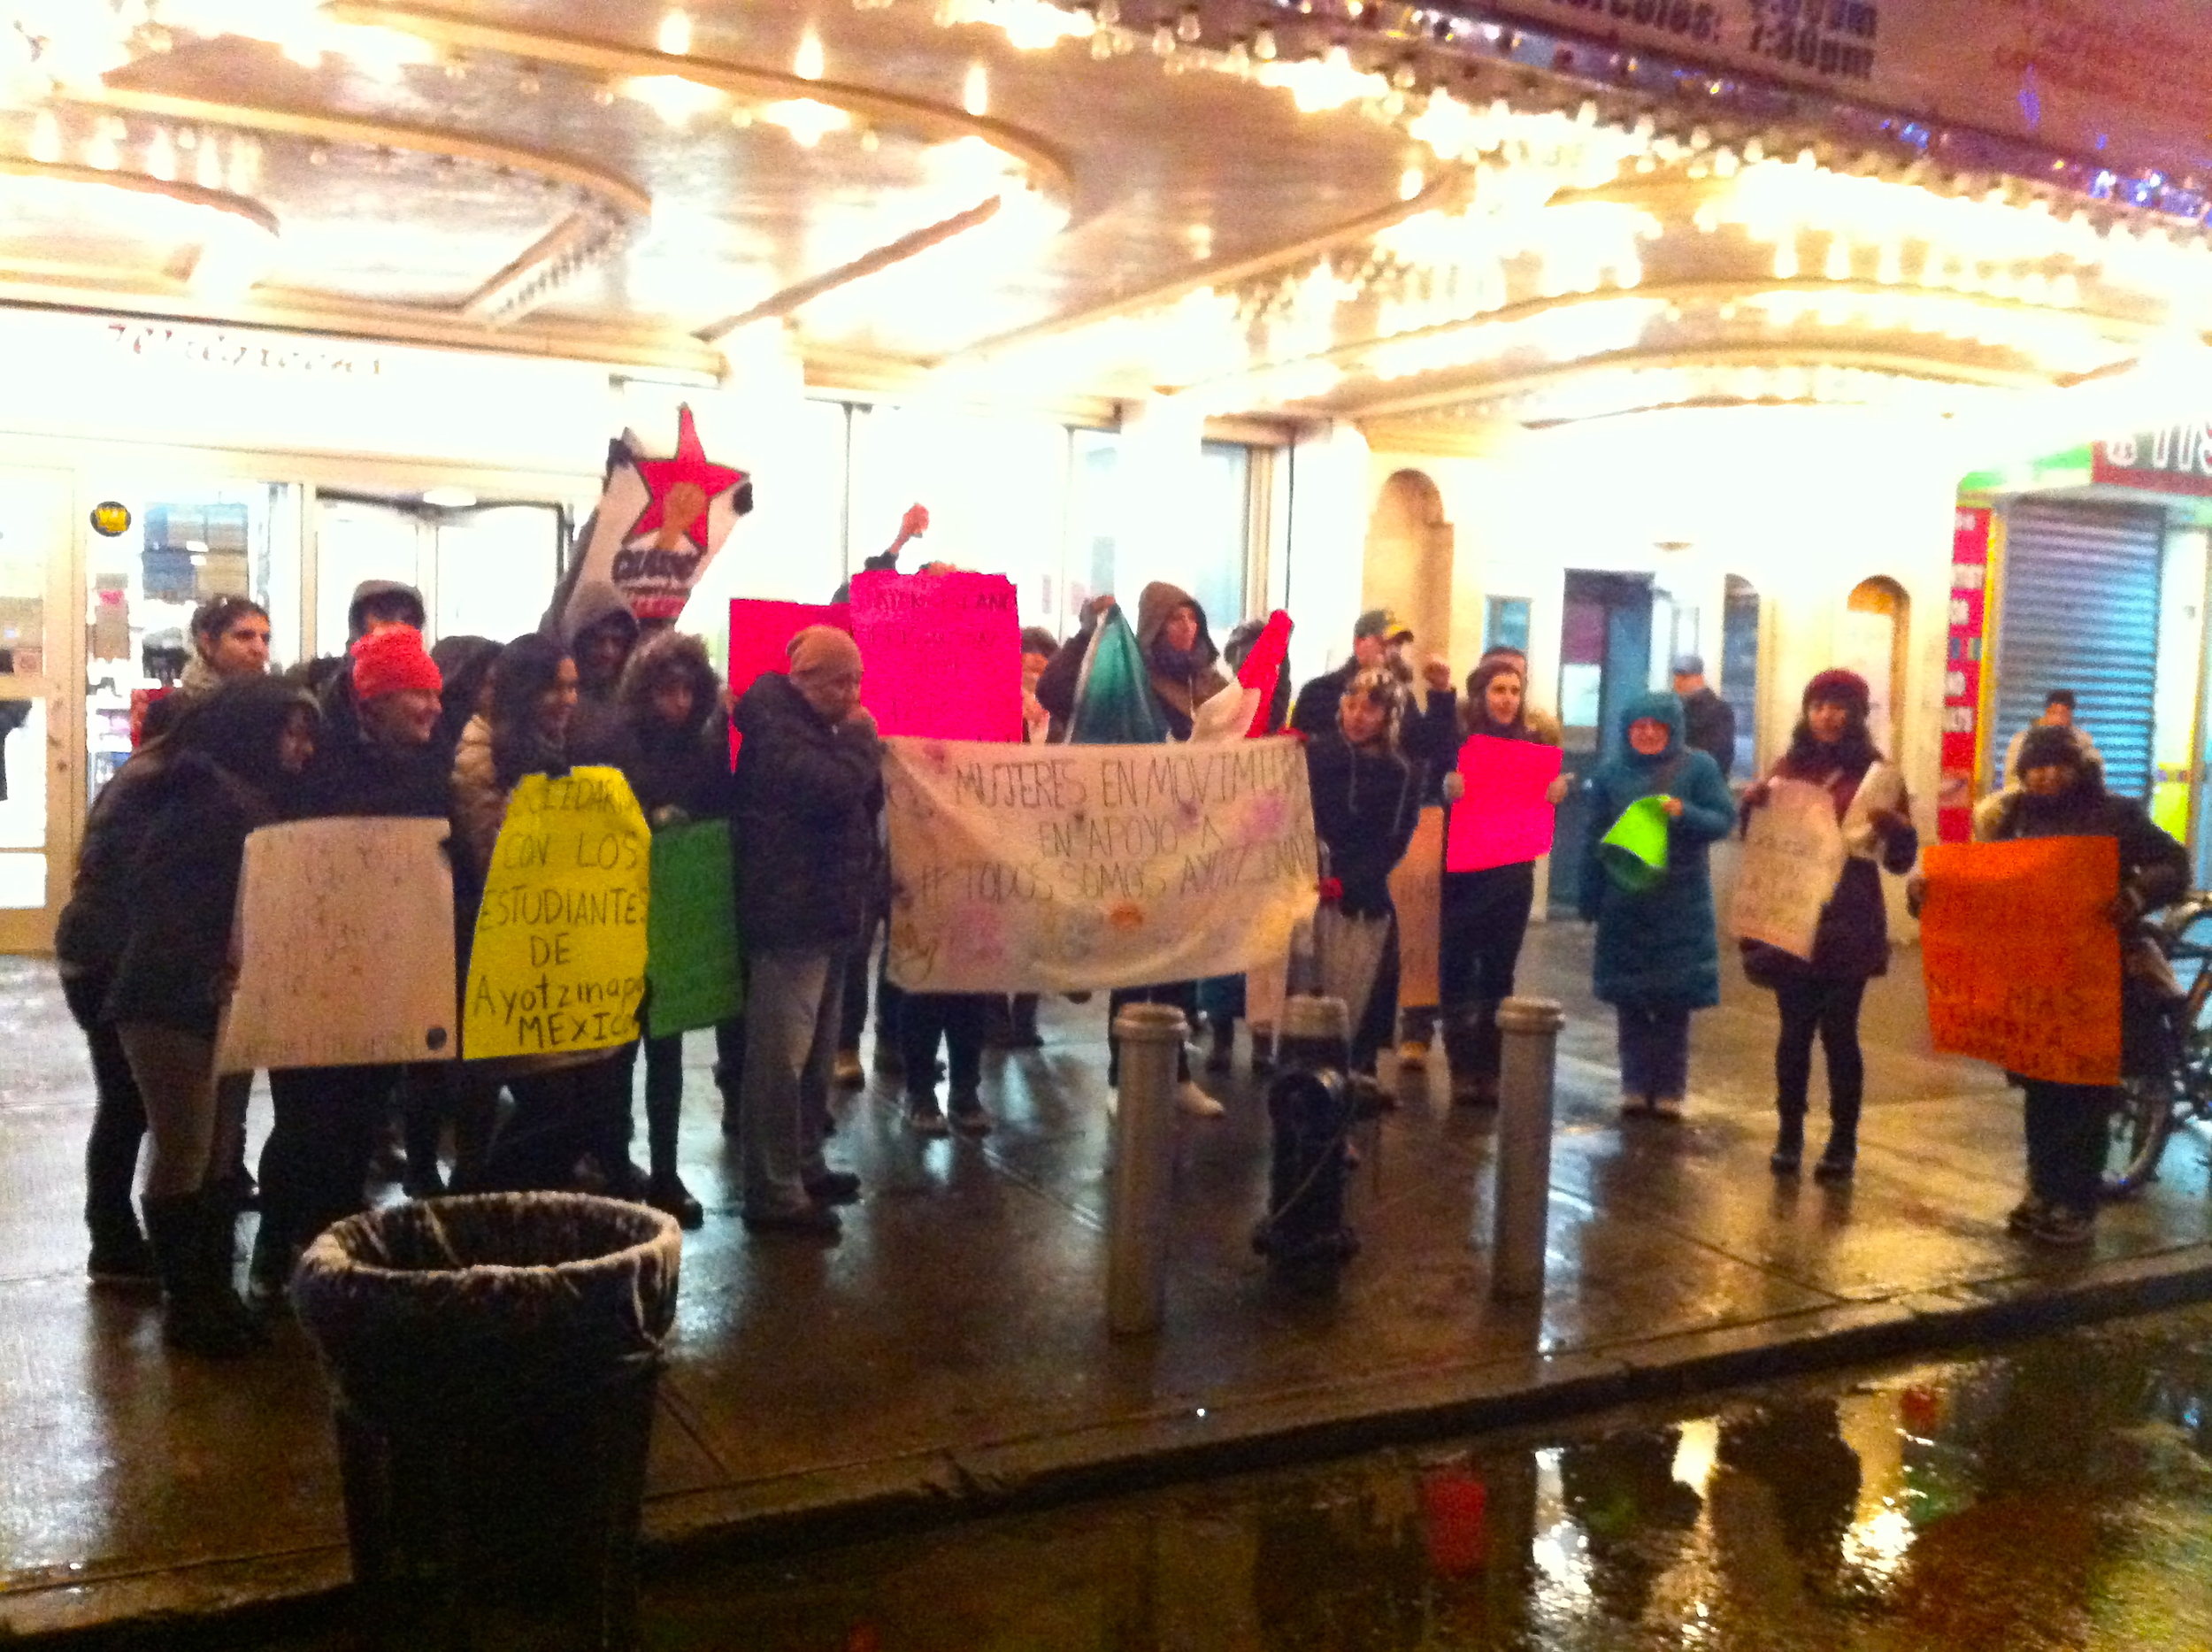 Some of the police reform activists and Queens residents, who participated ina vigil that lasted for almost 2 hours in snowand freezing rain conditionsWednesday night atCorona Plaza. Source : Louis Flores